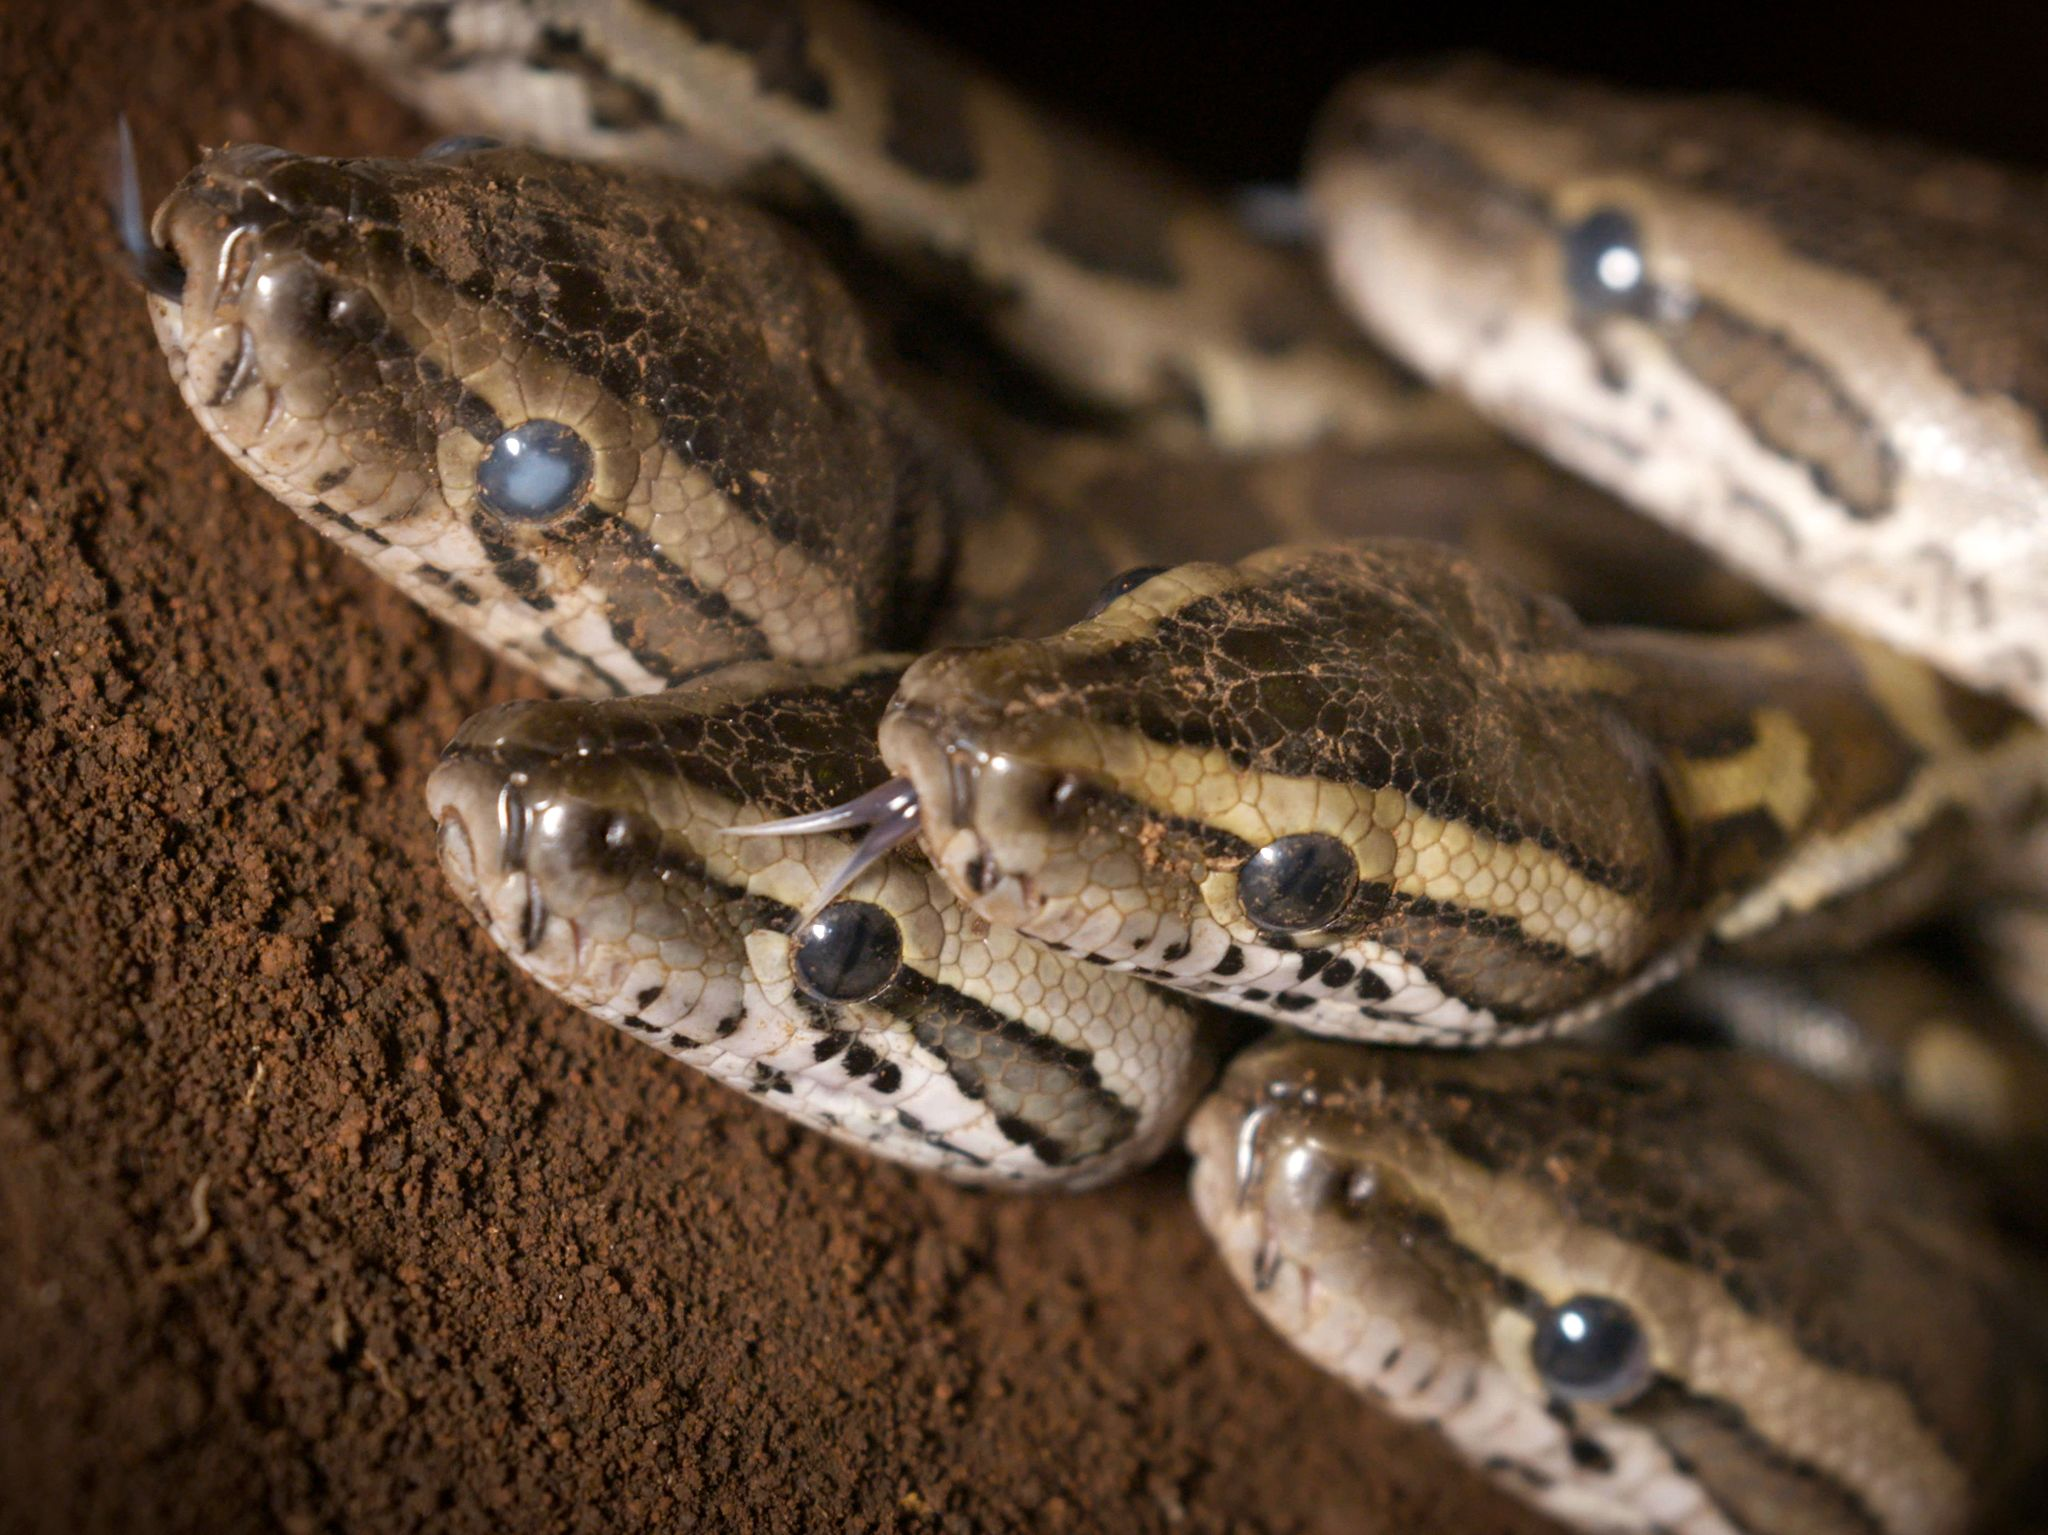 South Africa: Baby rock pythons prepare to leave the nest. This image is from Africa's Super Snake. [Foto del giorno - novembre 2017]